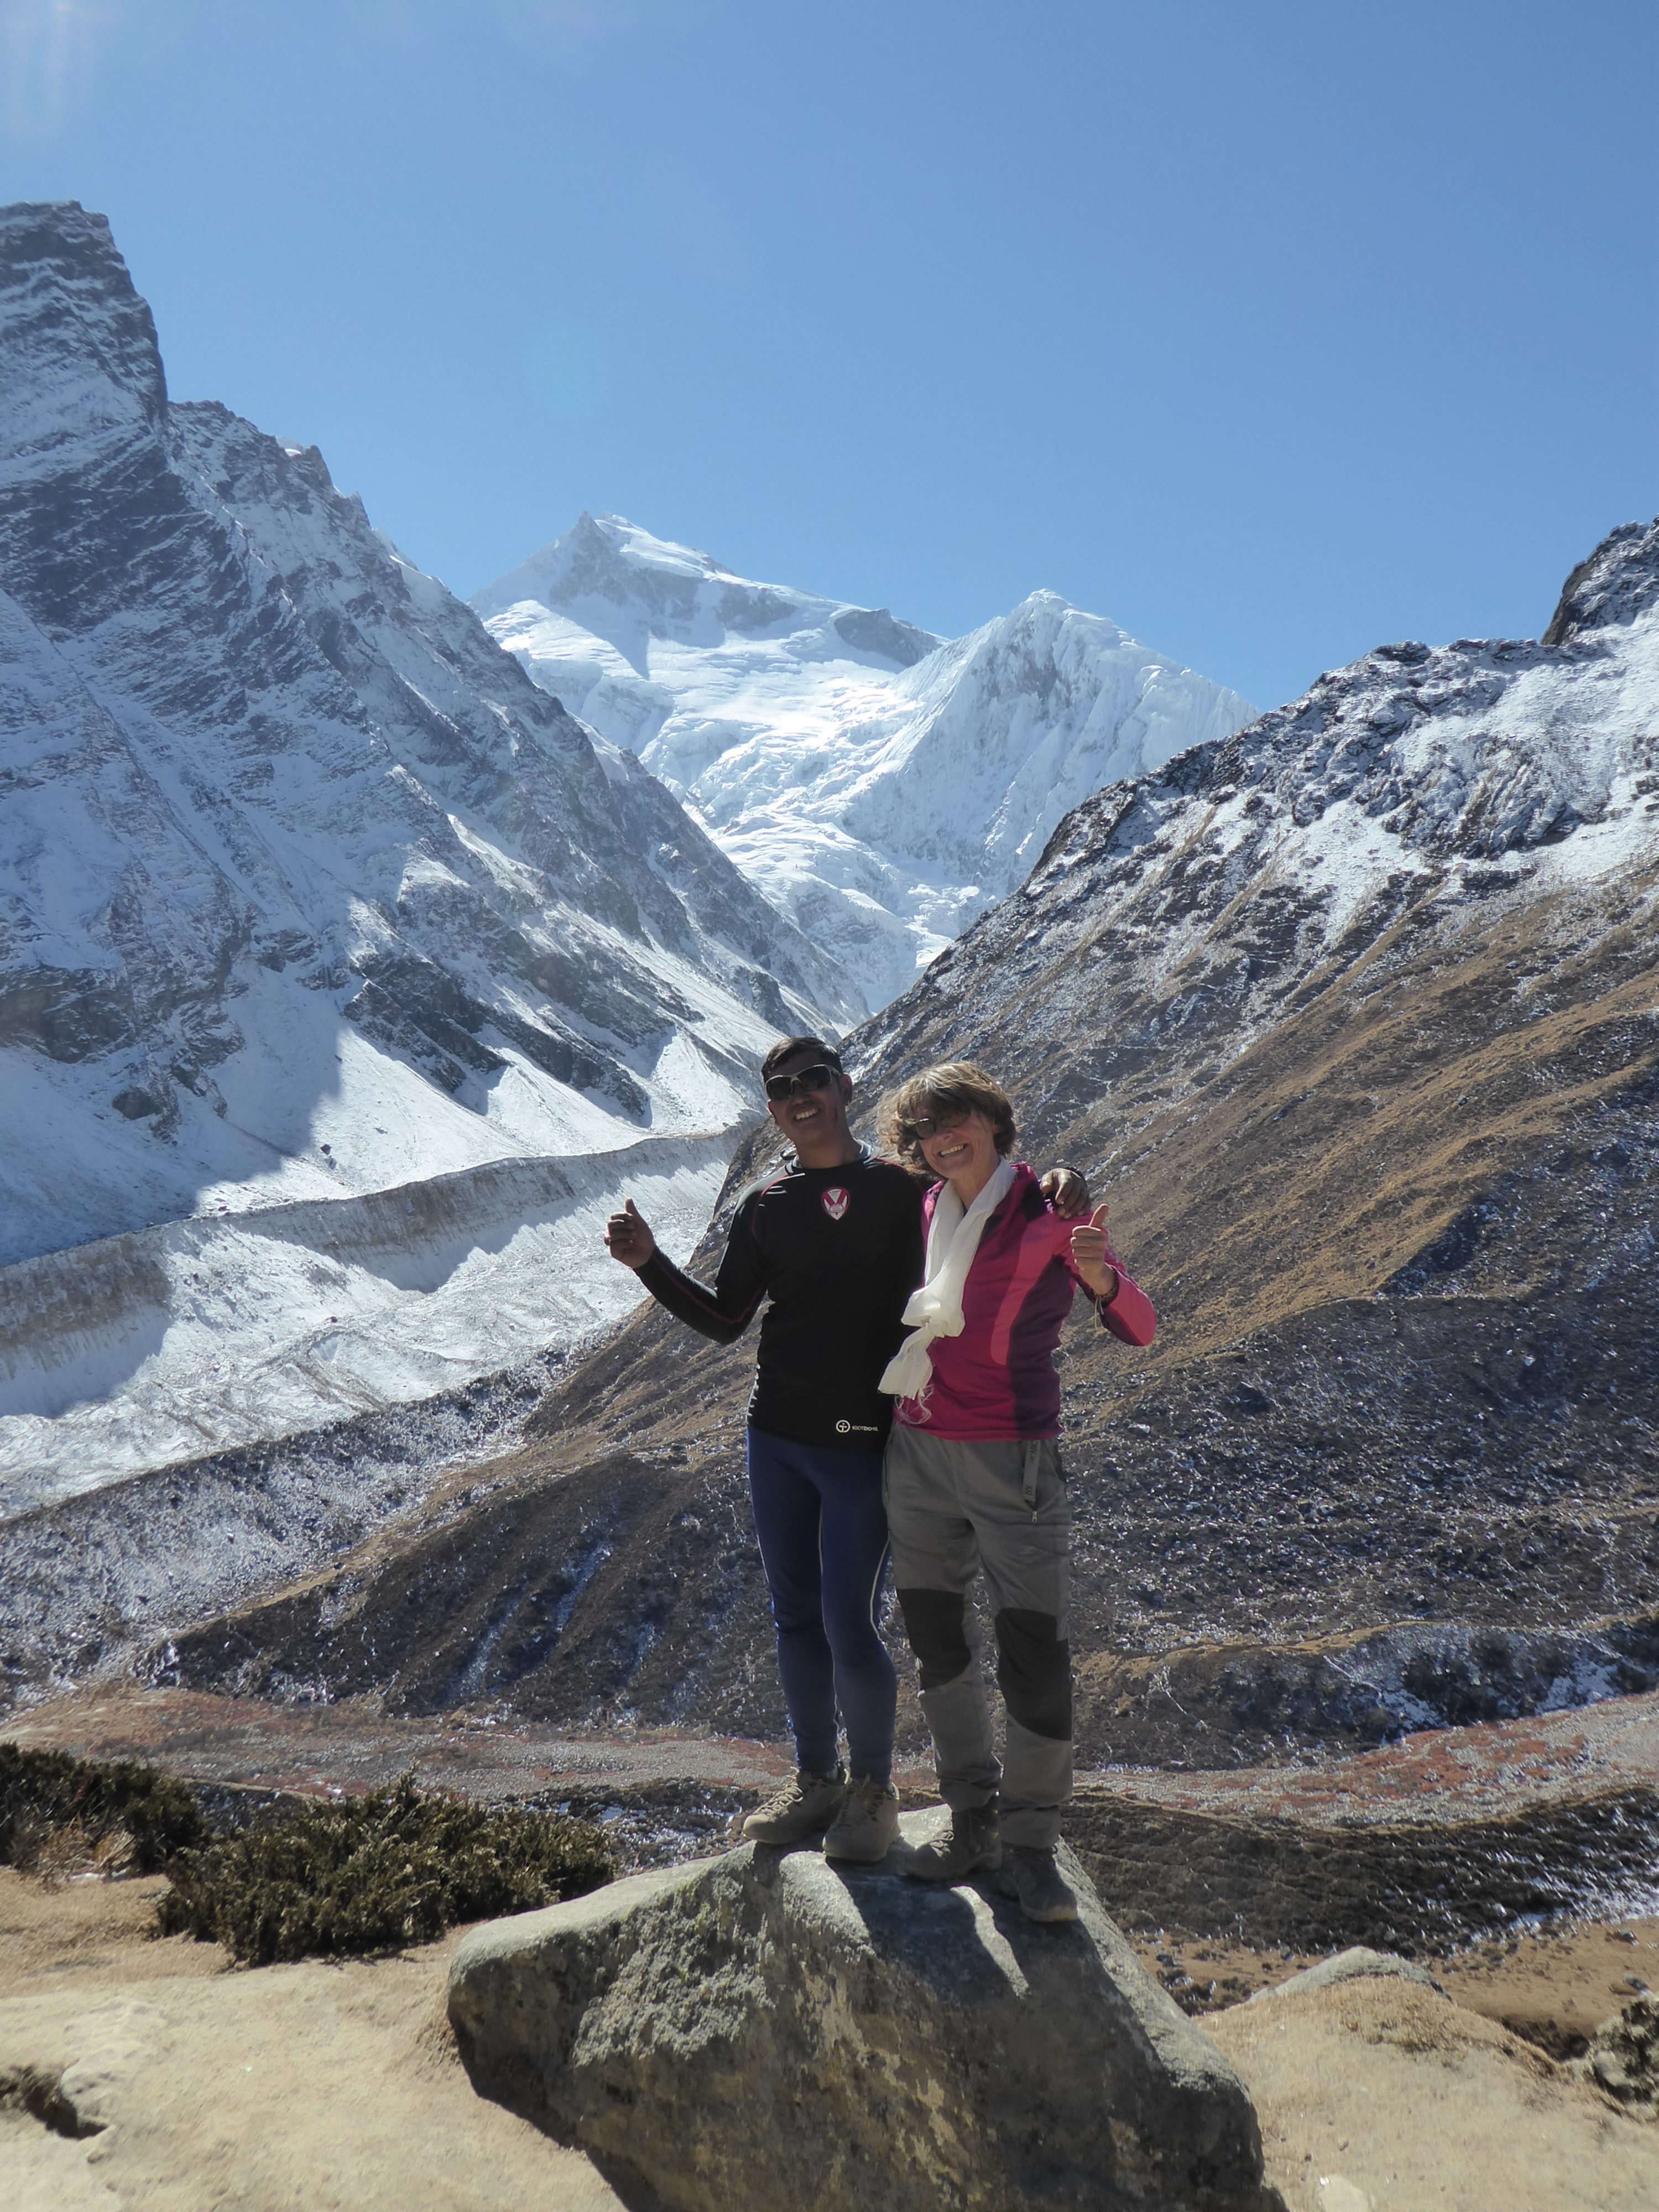 Chhering, Val and Manaslu. On the trail to Dharamsala.